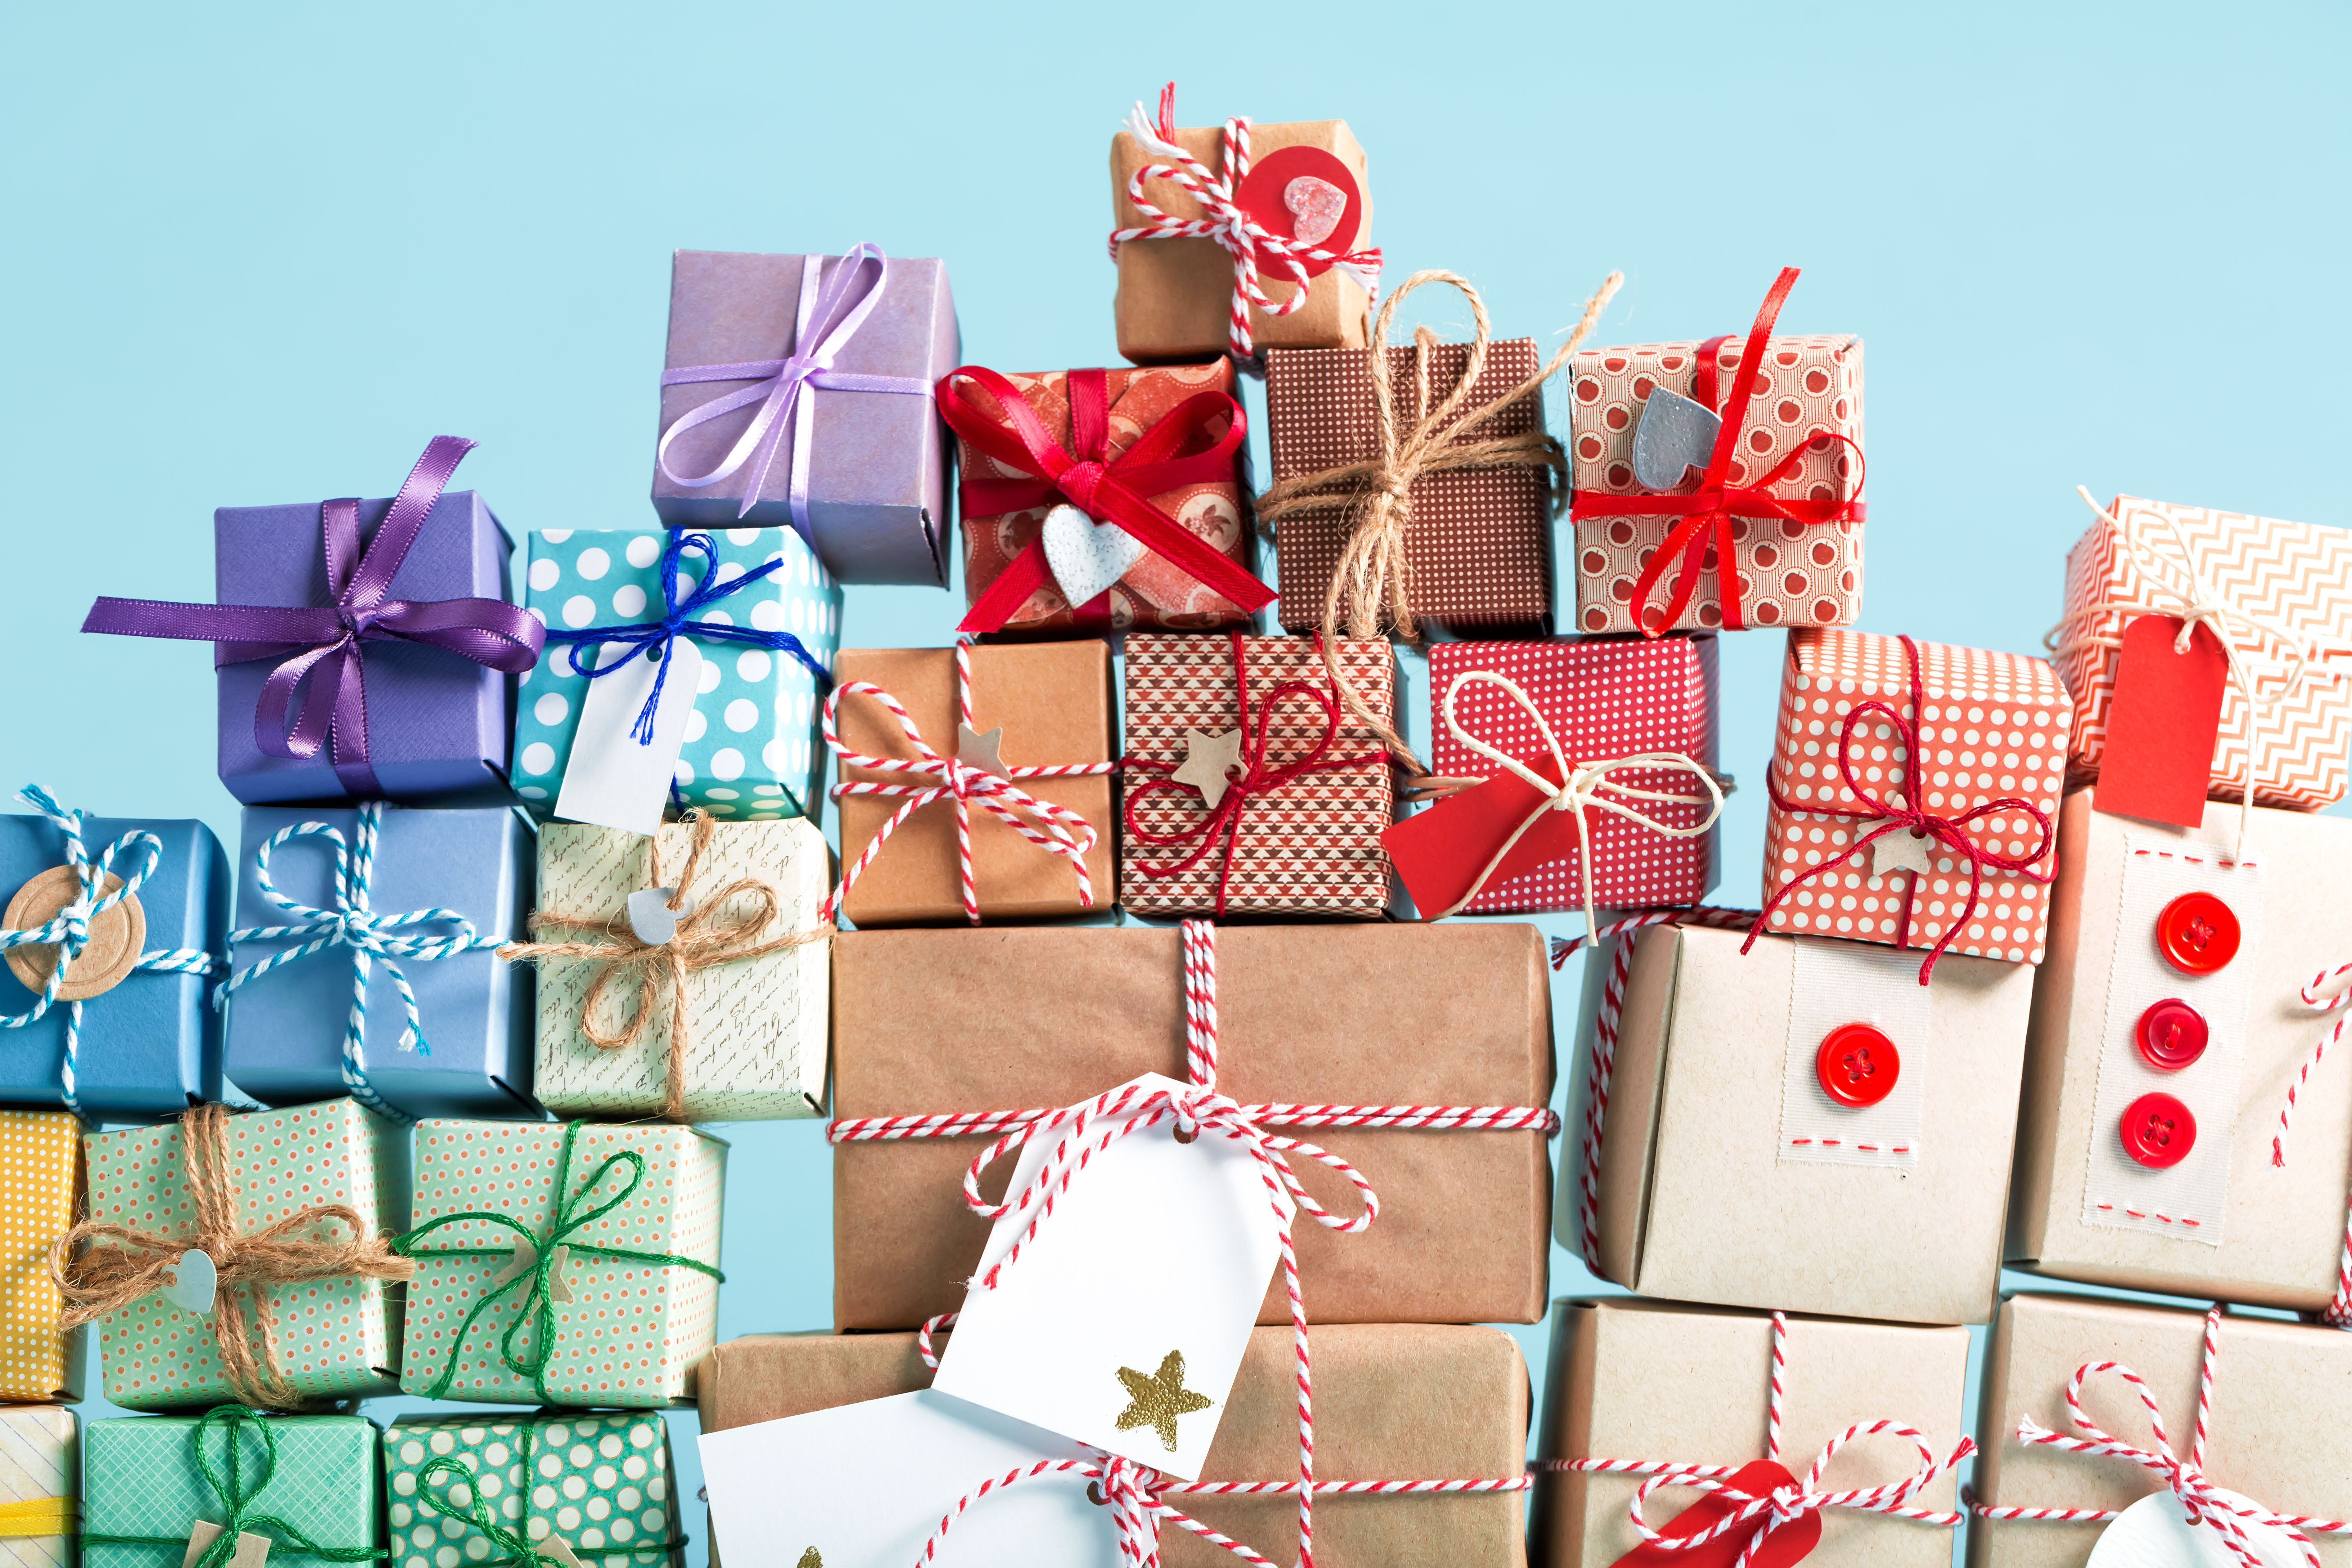 STOP SPENDING: Are You Being Guilt-Tripped Into Buying Extra Christmas Presents This